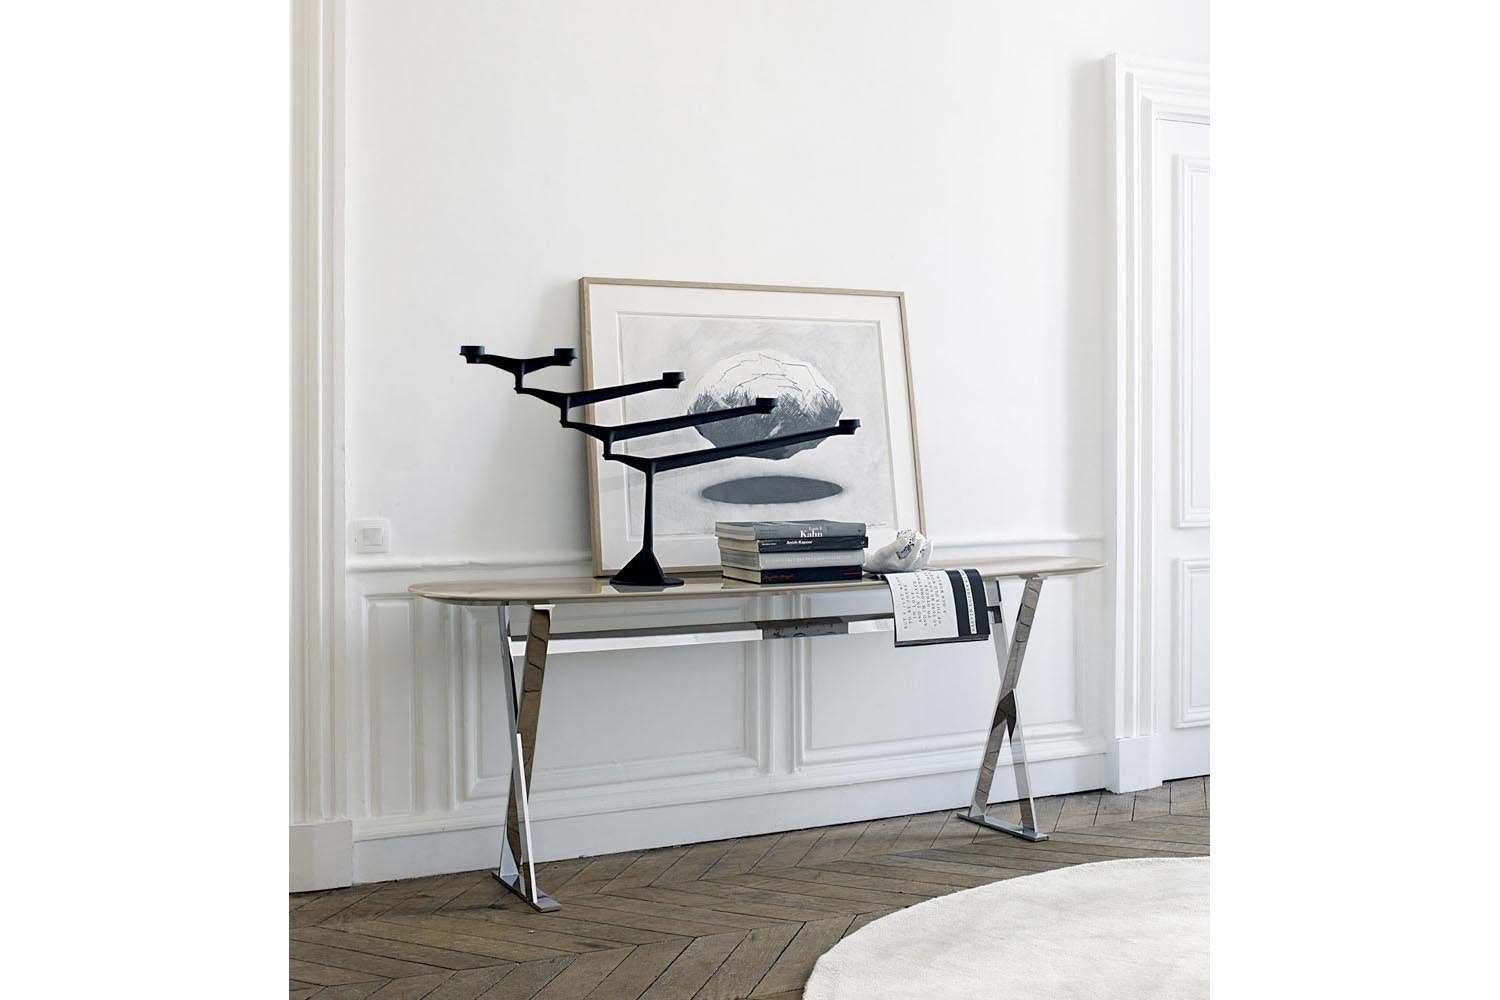 Pathos Console by Antonio Citterio for Maxalto